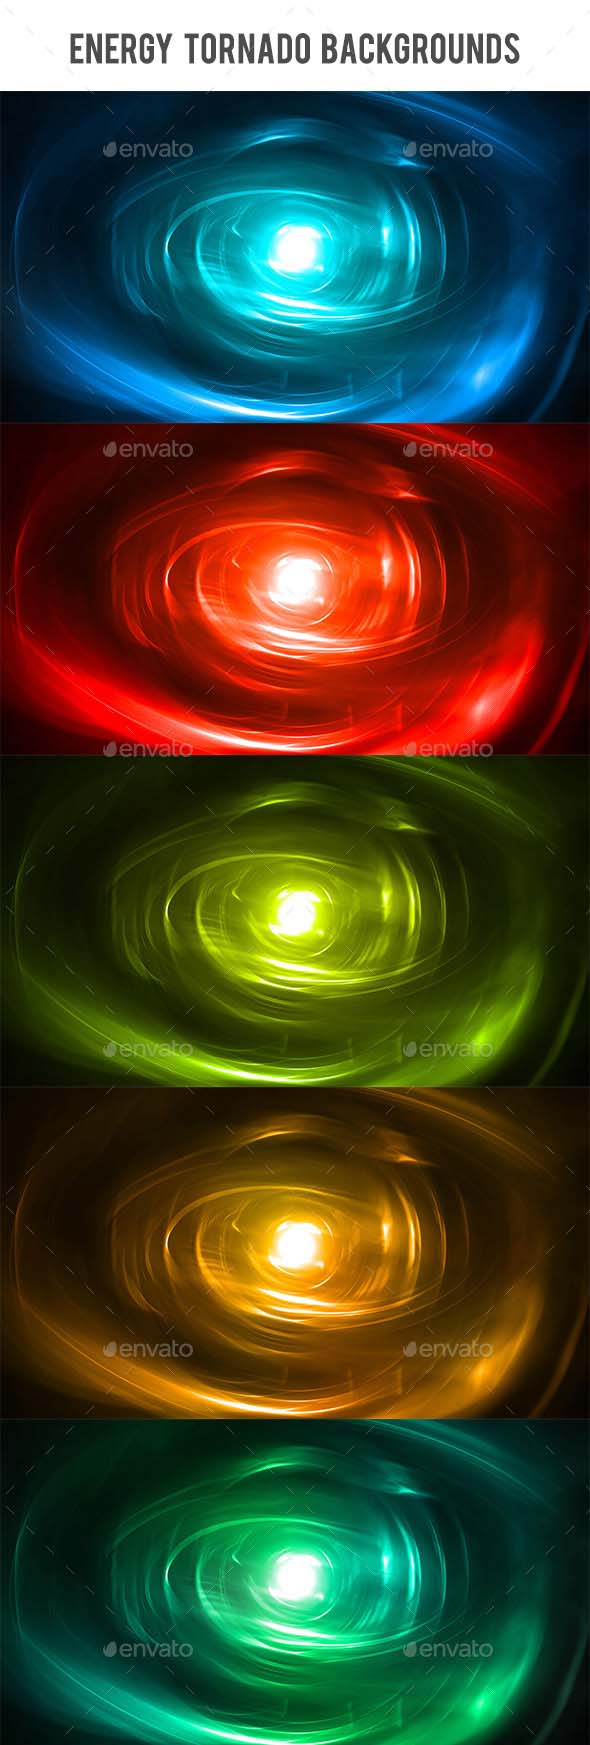 Energy Tornado Backgrounds